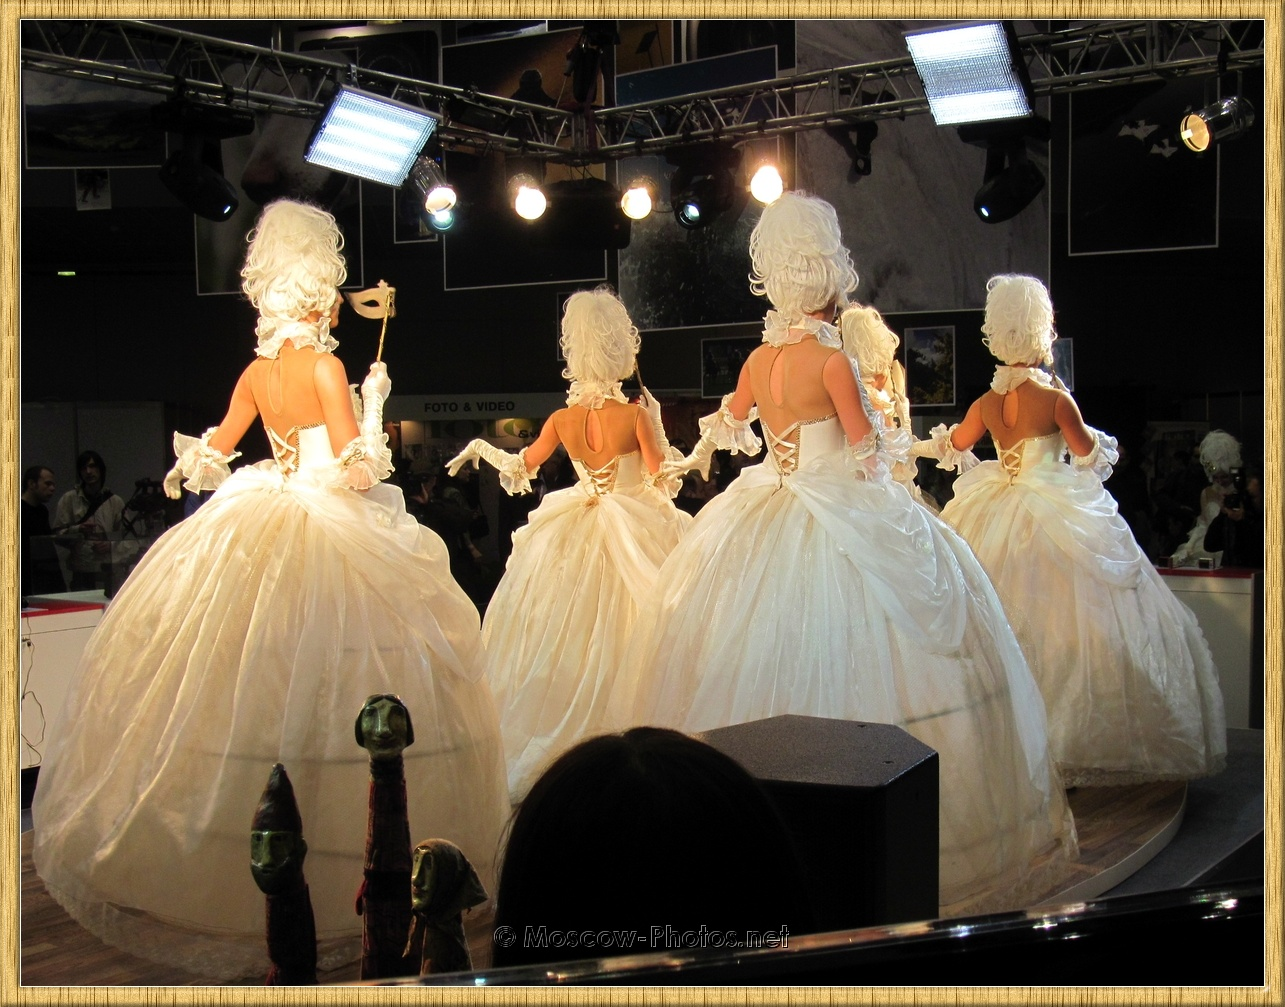 Girls dancing in white ball gowns